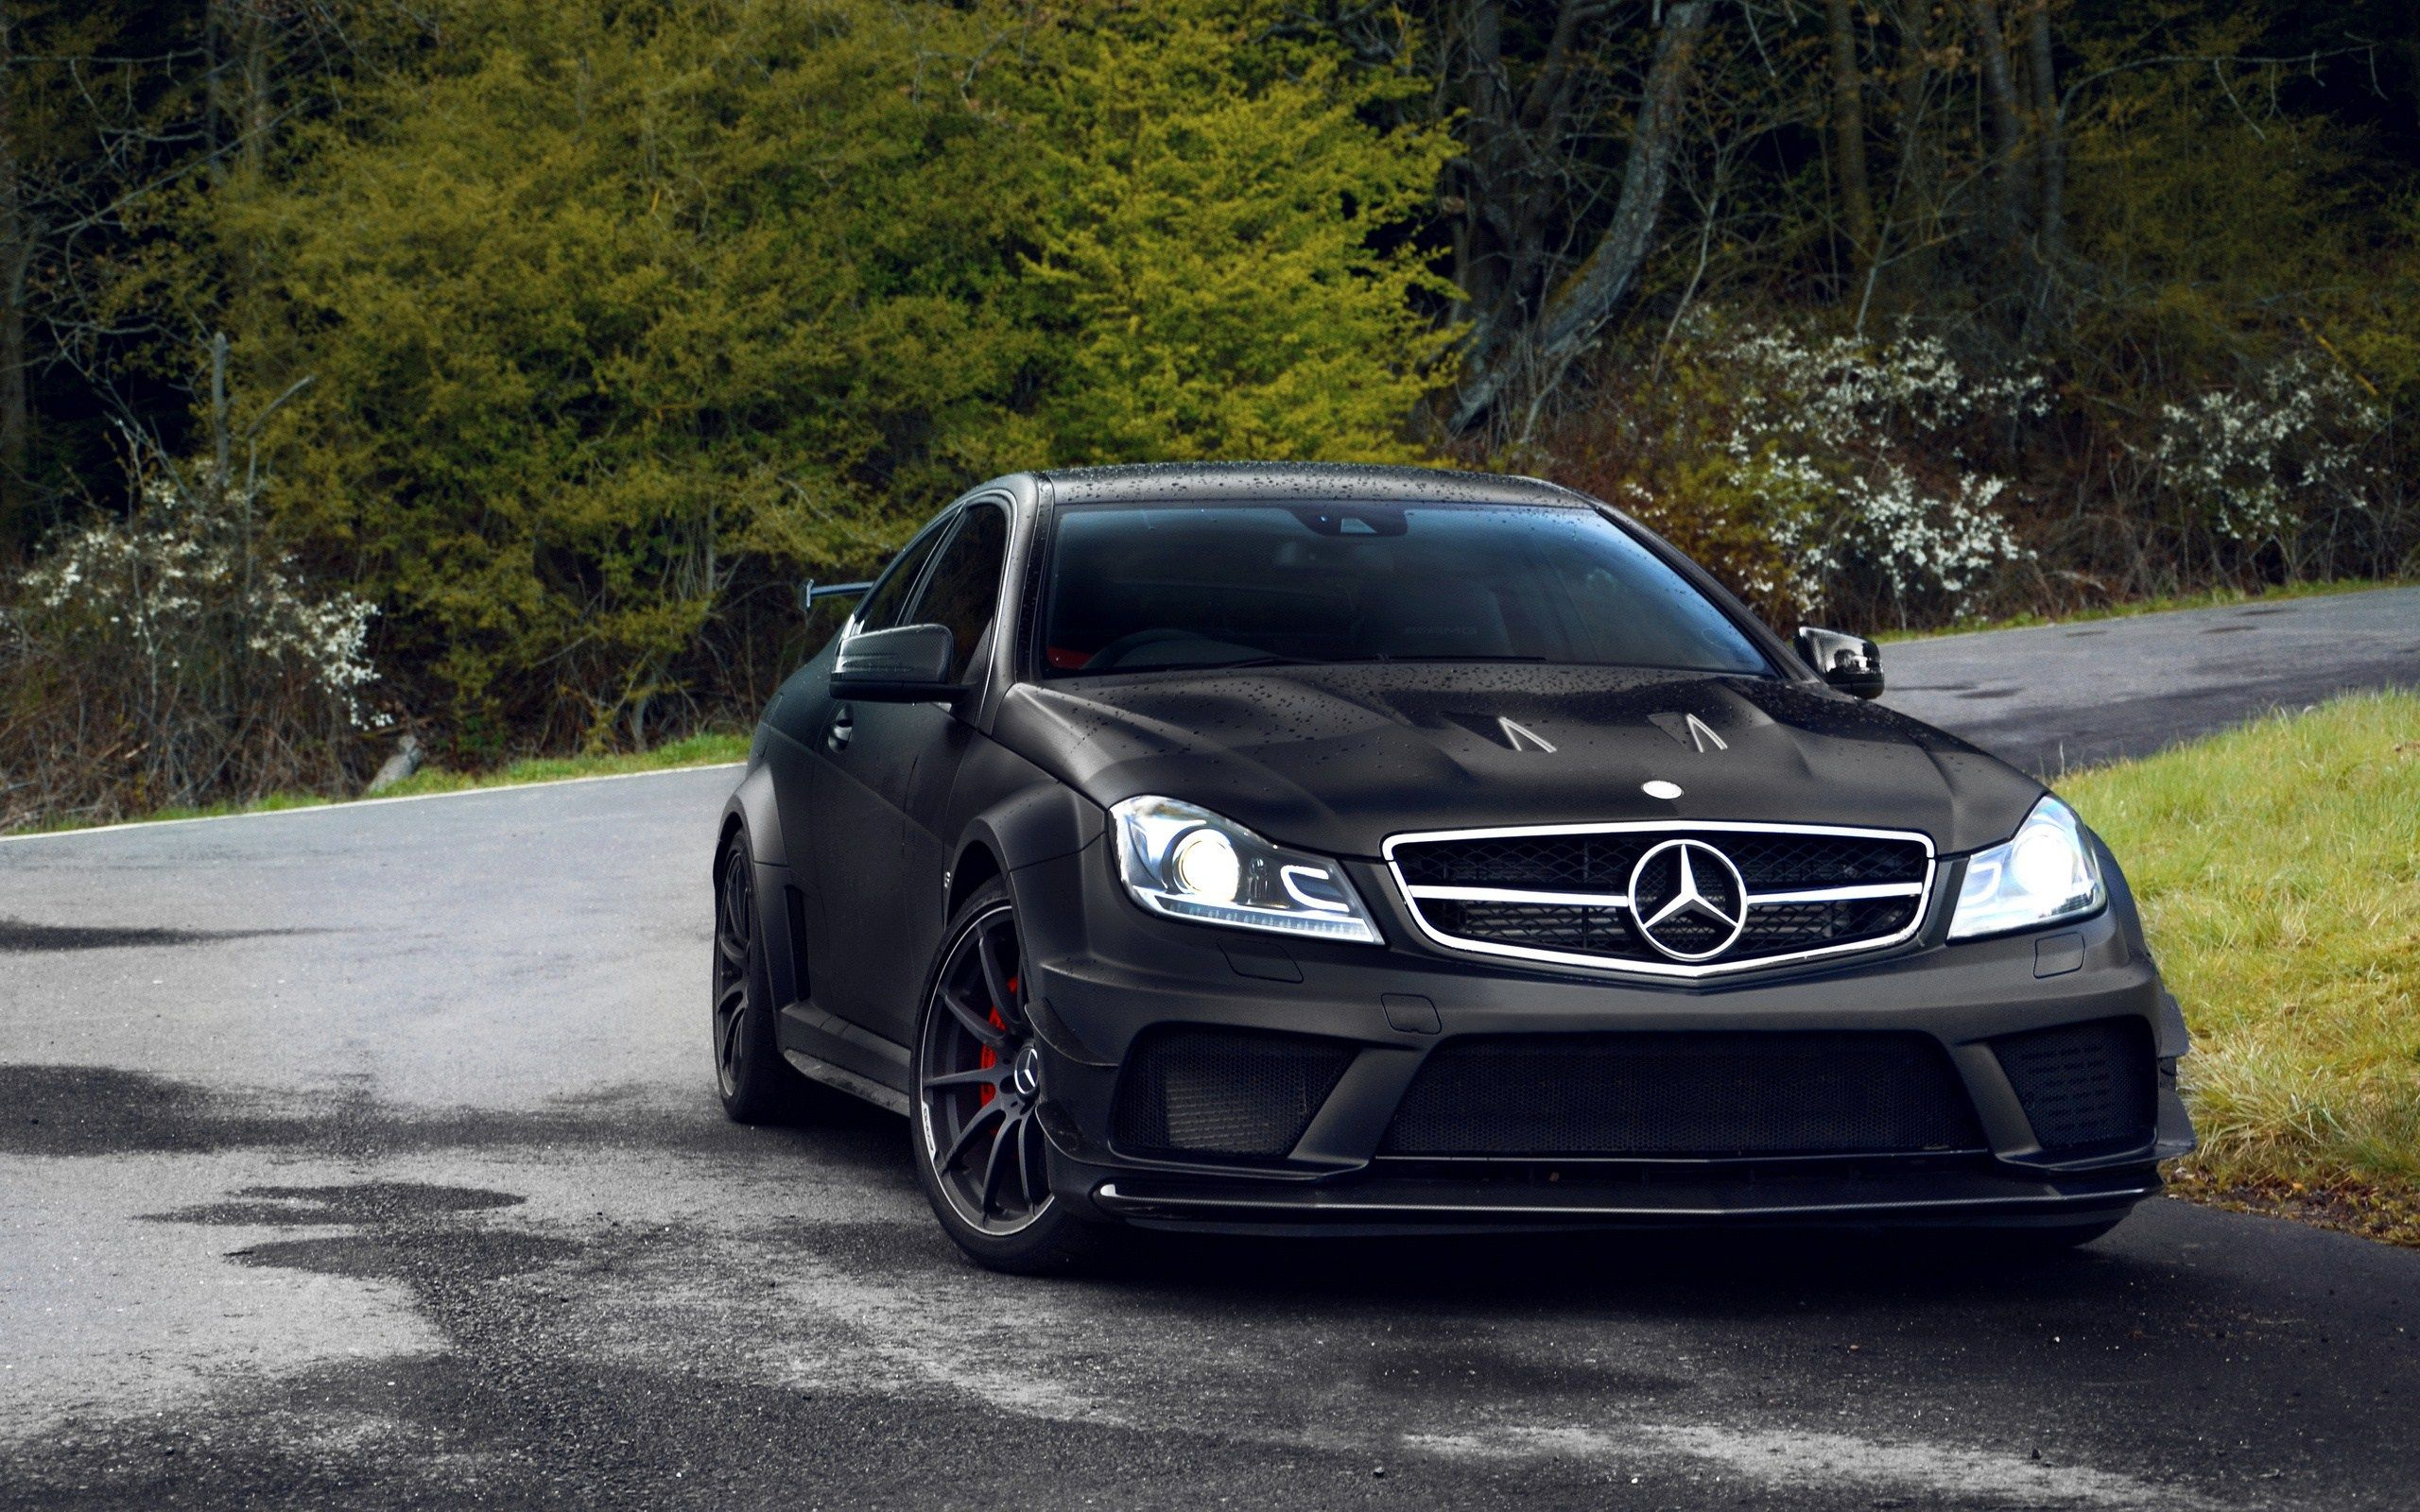 Mercedes benz amg blackseries of bas fransen car photography find this pin and more on download wallpaper